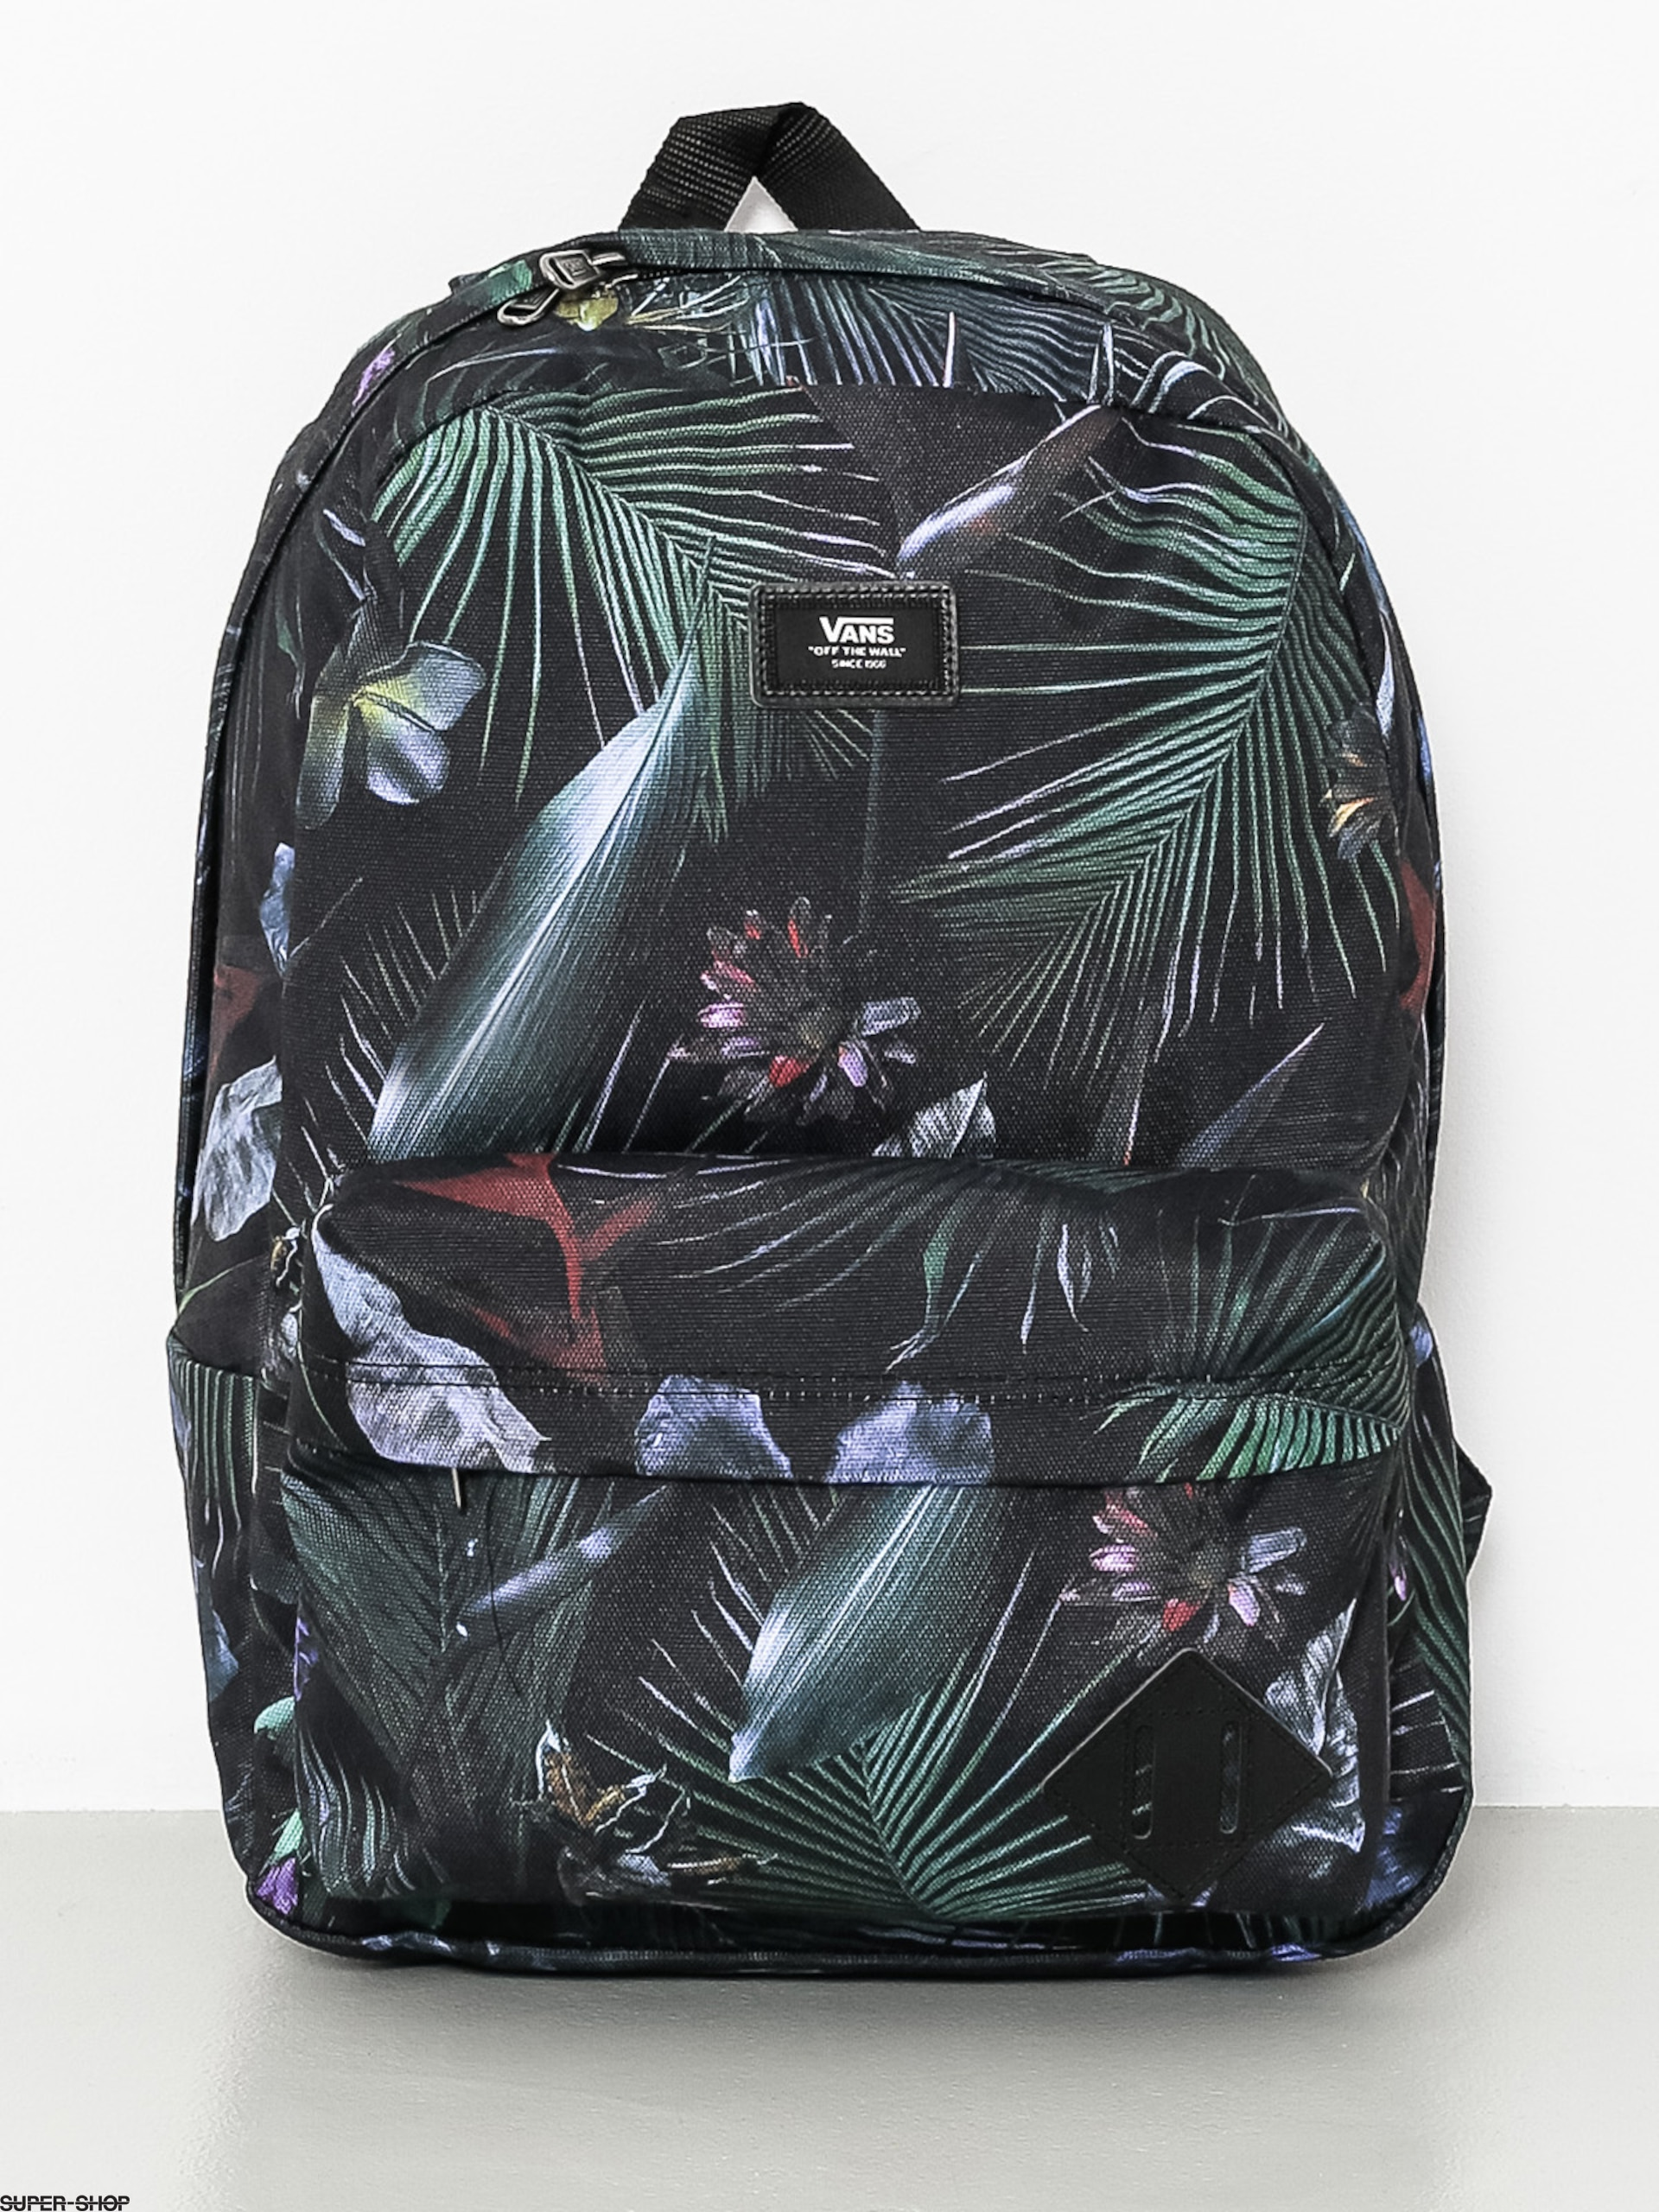 dc3f3fb661 936771-w1920-vans-backpack-old-skool-ii-neo-jungle.jpg